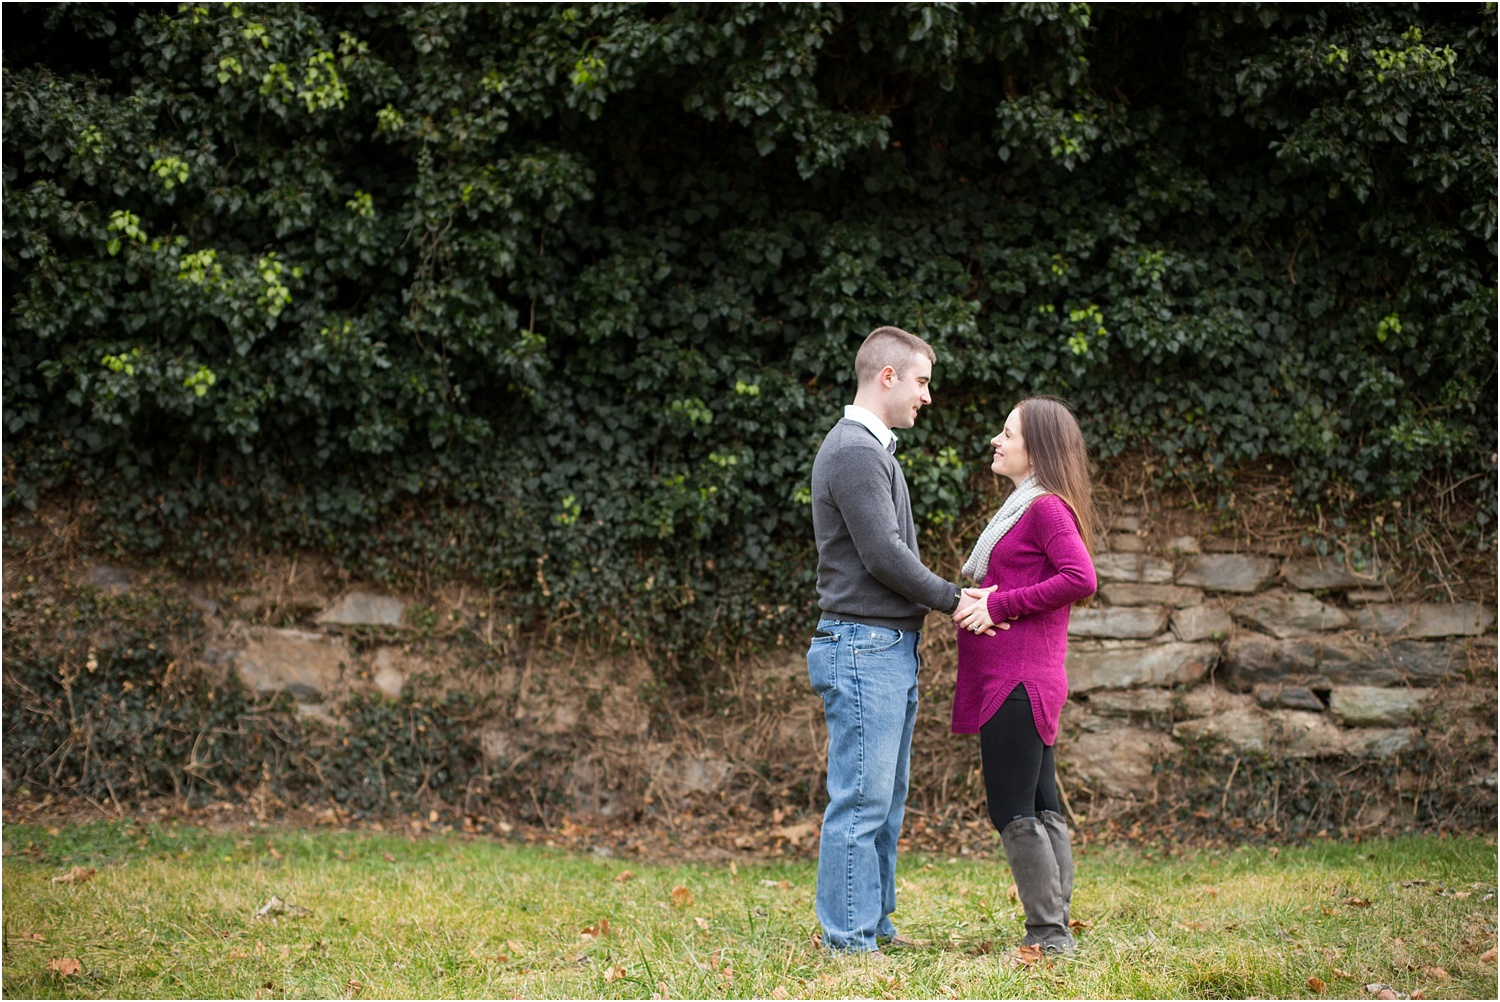 Kuklis_Harrisonburg_Va_Family_Photography_0011.jpg